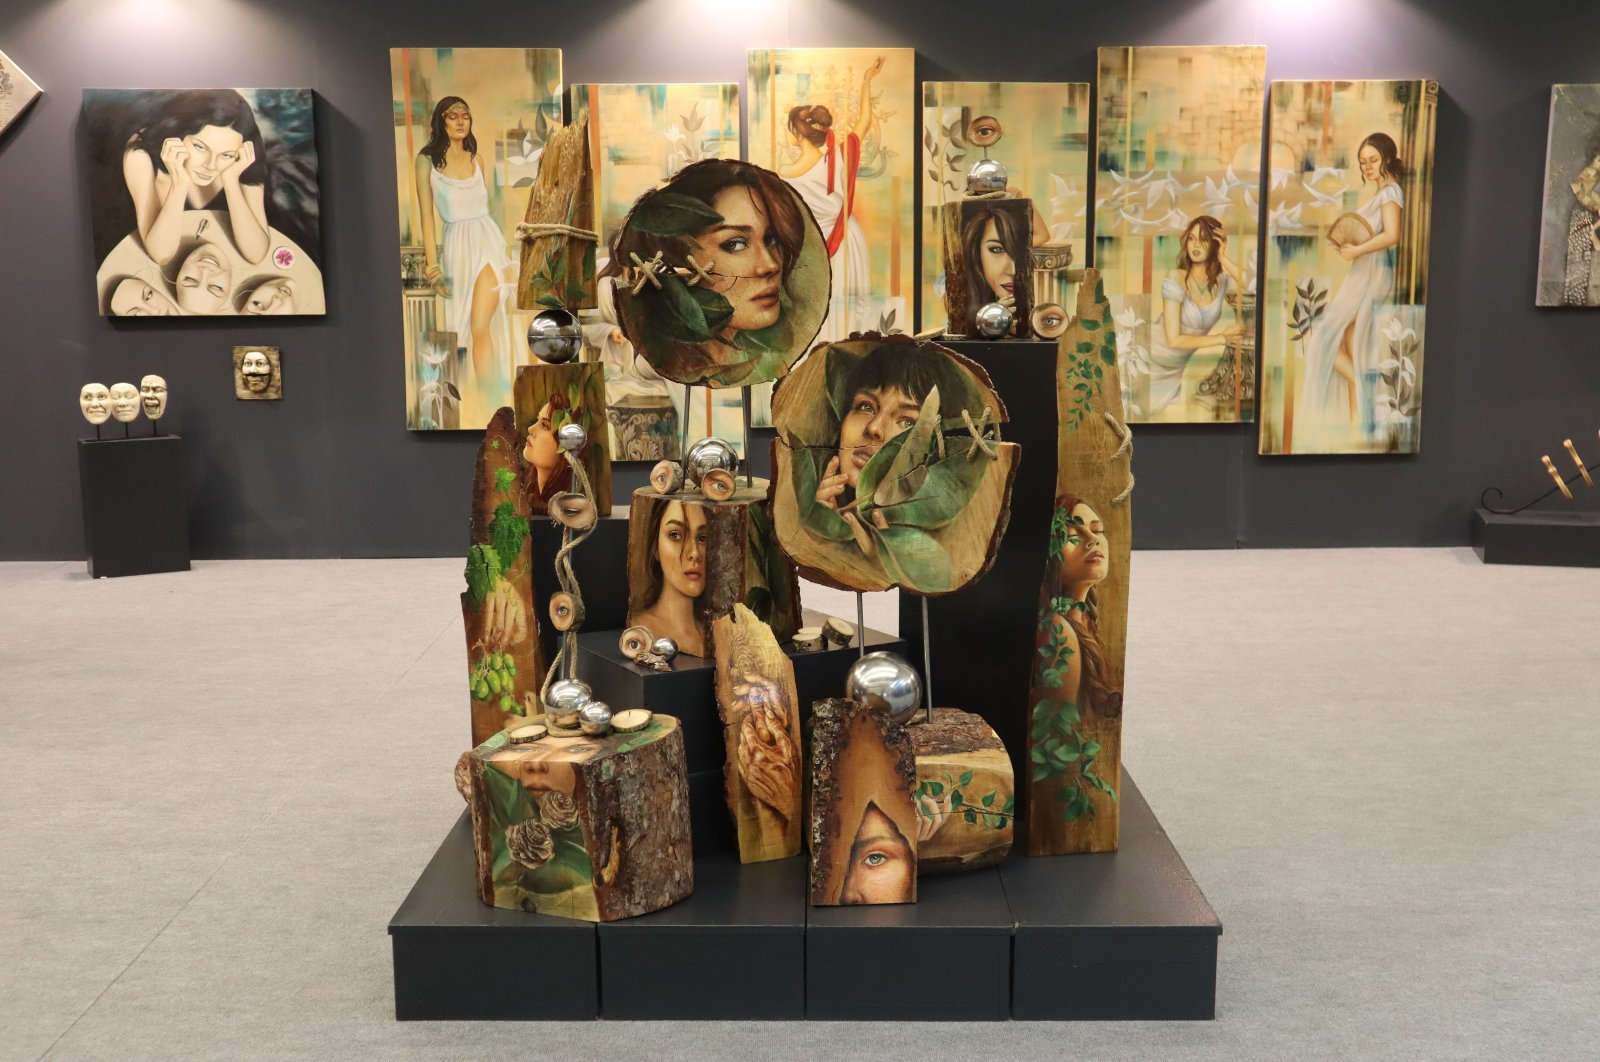 Artworks on women made by female teachers working at the Ankara Metropolitan Municipality are seen in this photo at the contemporary art fair ARTANKARA, Ankara, Turkey, March 30, 2021 (Photo by Dilara Aslan)